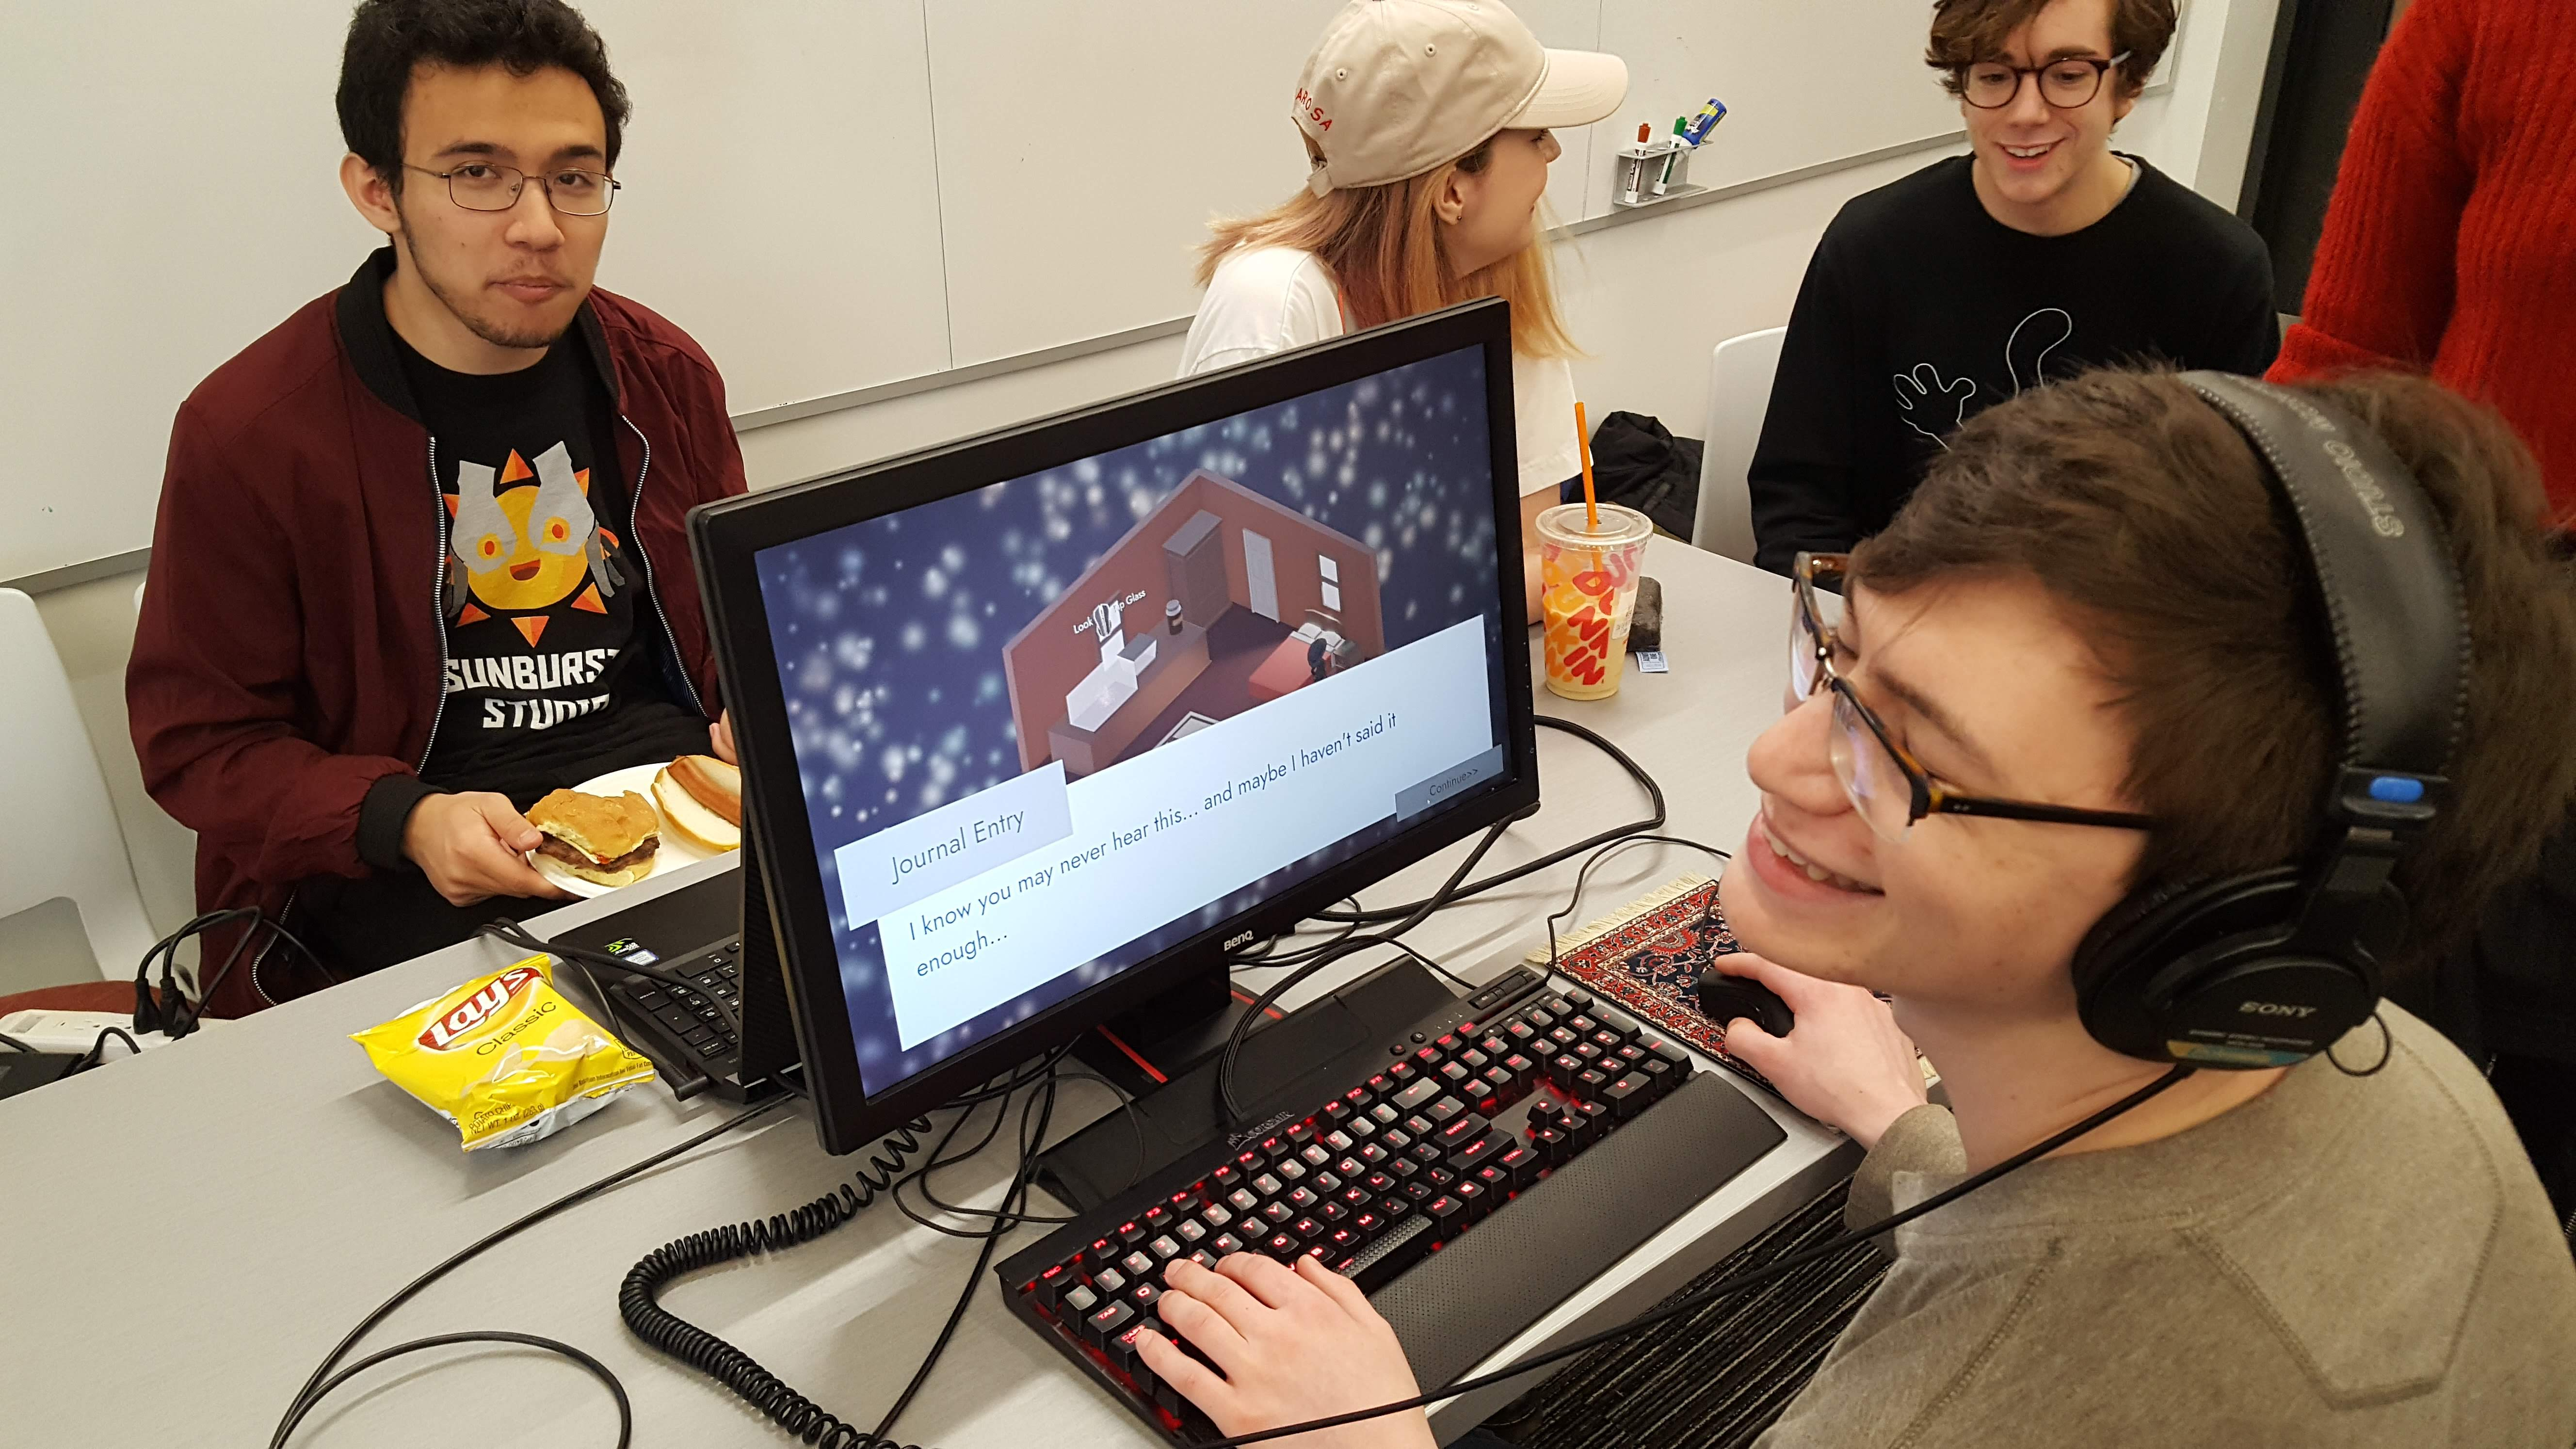 IMGD students playing games at Showfest 2019